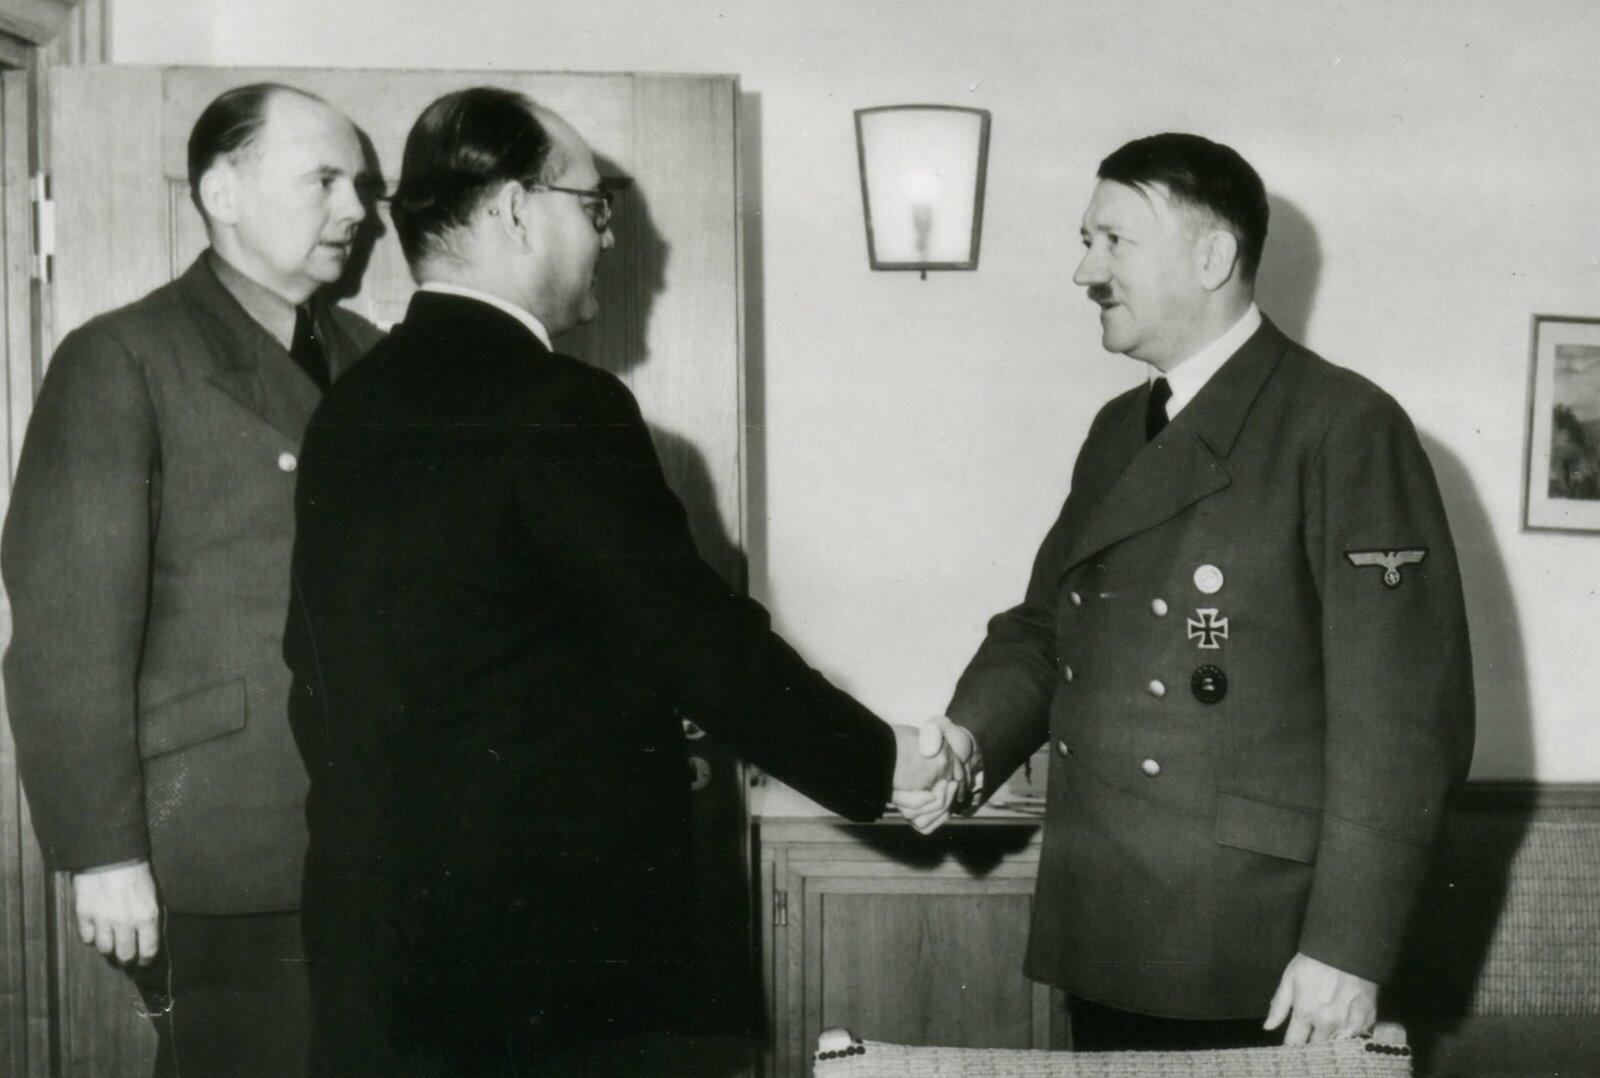 1942 :: Subhas Chandra Bose meets Hitler http://t.co/TQ8deFHNly